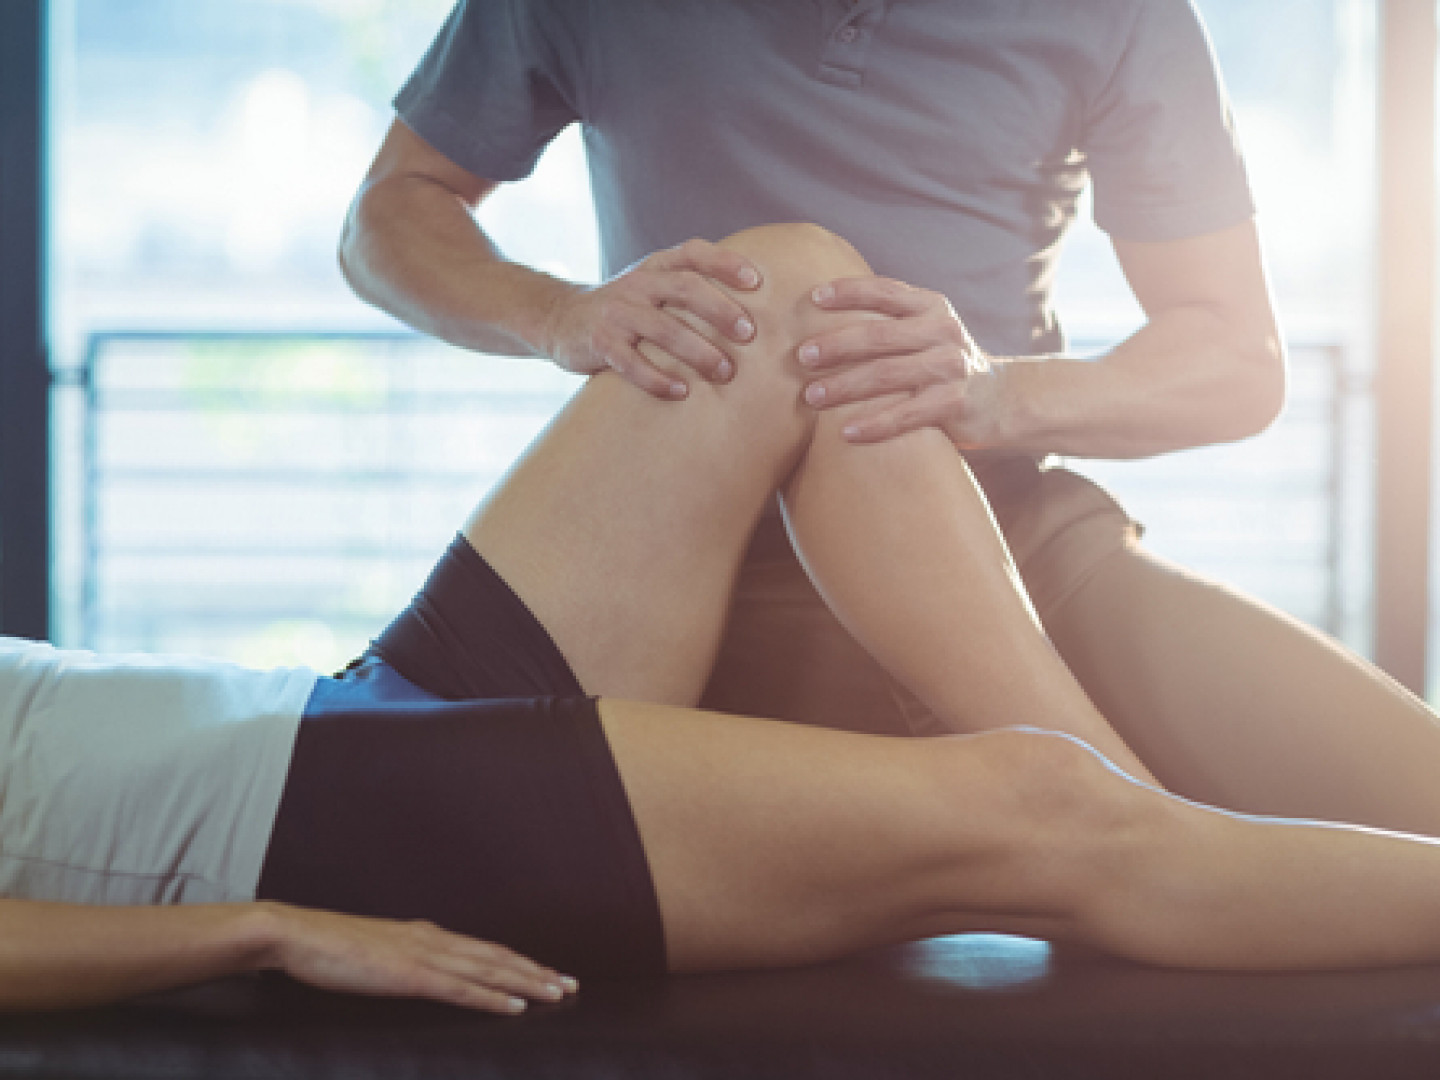 Physiotherapy in St. Cloud, MN